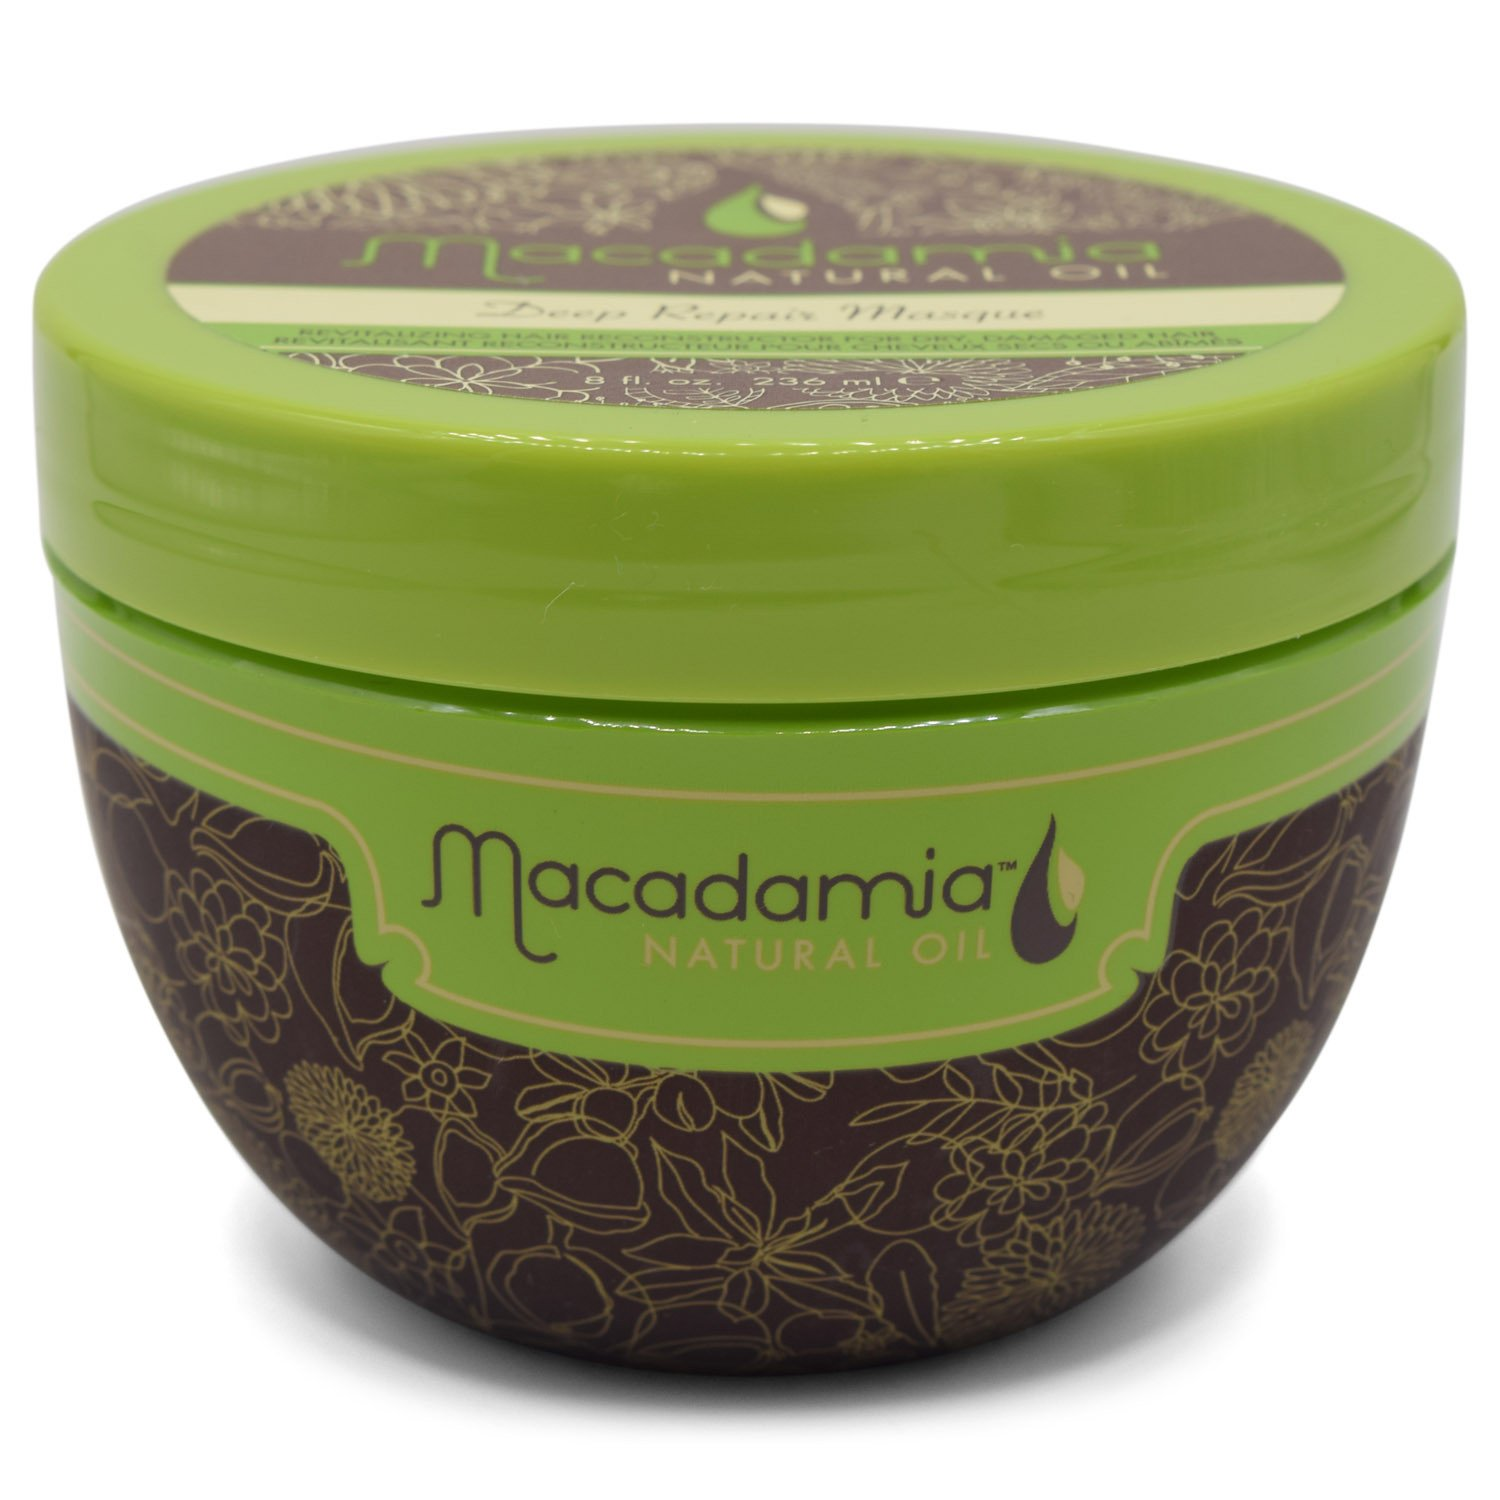 Macadamia Professional Natural Oil Deep Repair Masque 8 Oz